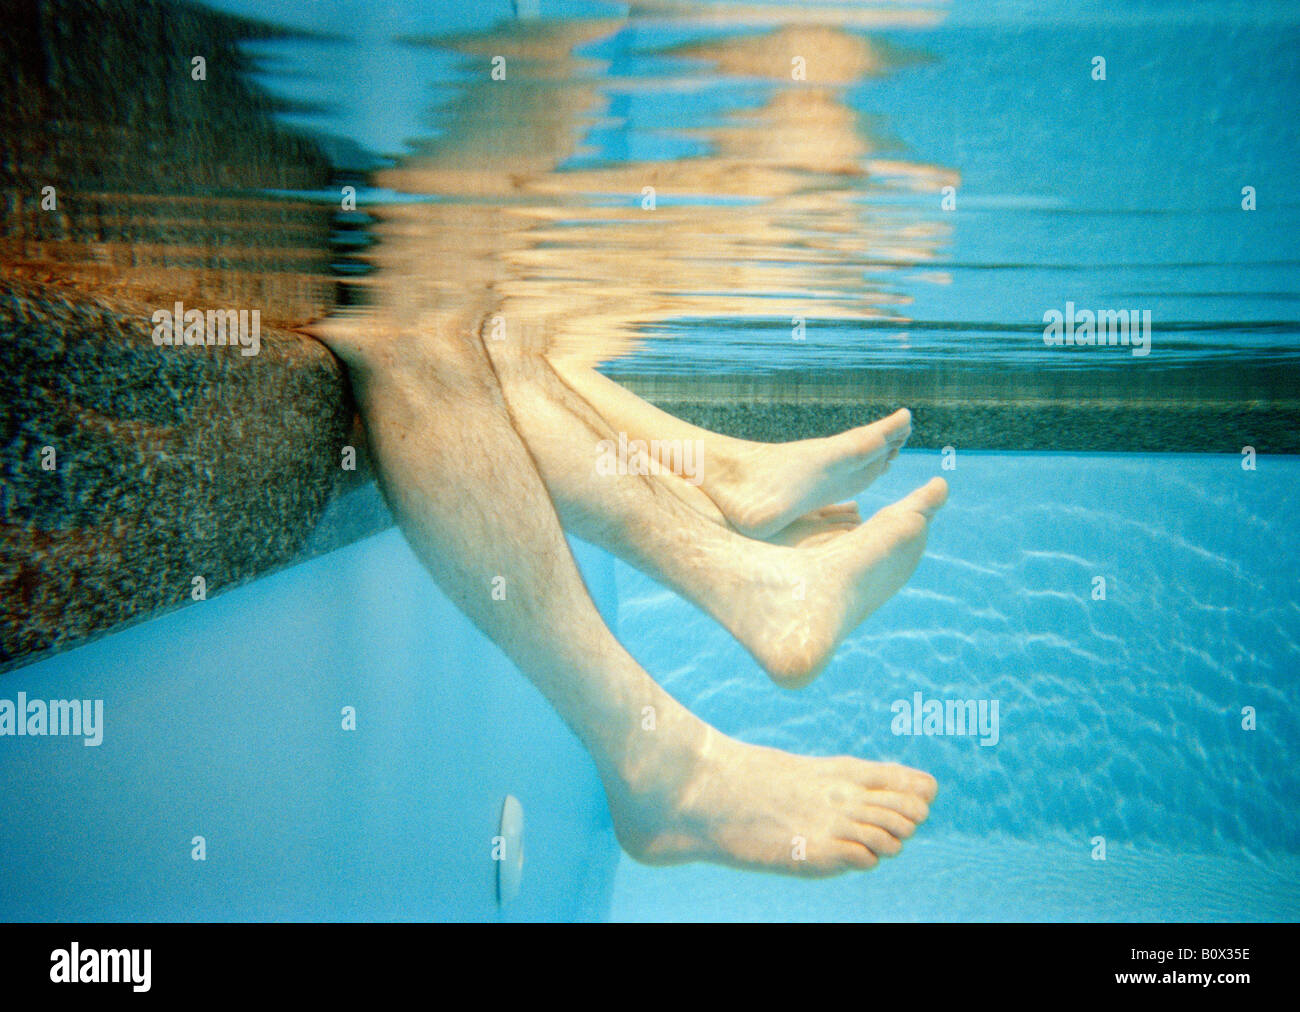 Four human legs underwater in a swimming pool - Stock Image